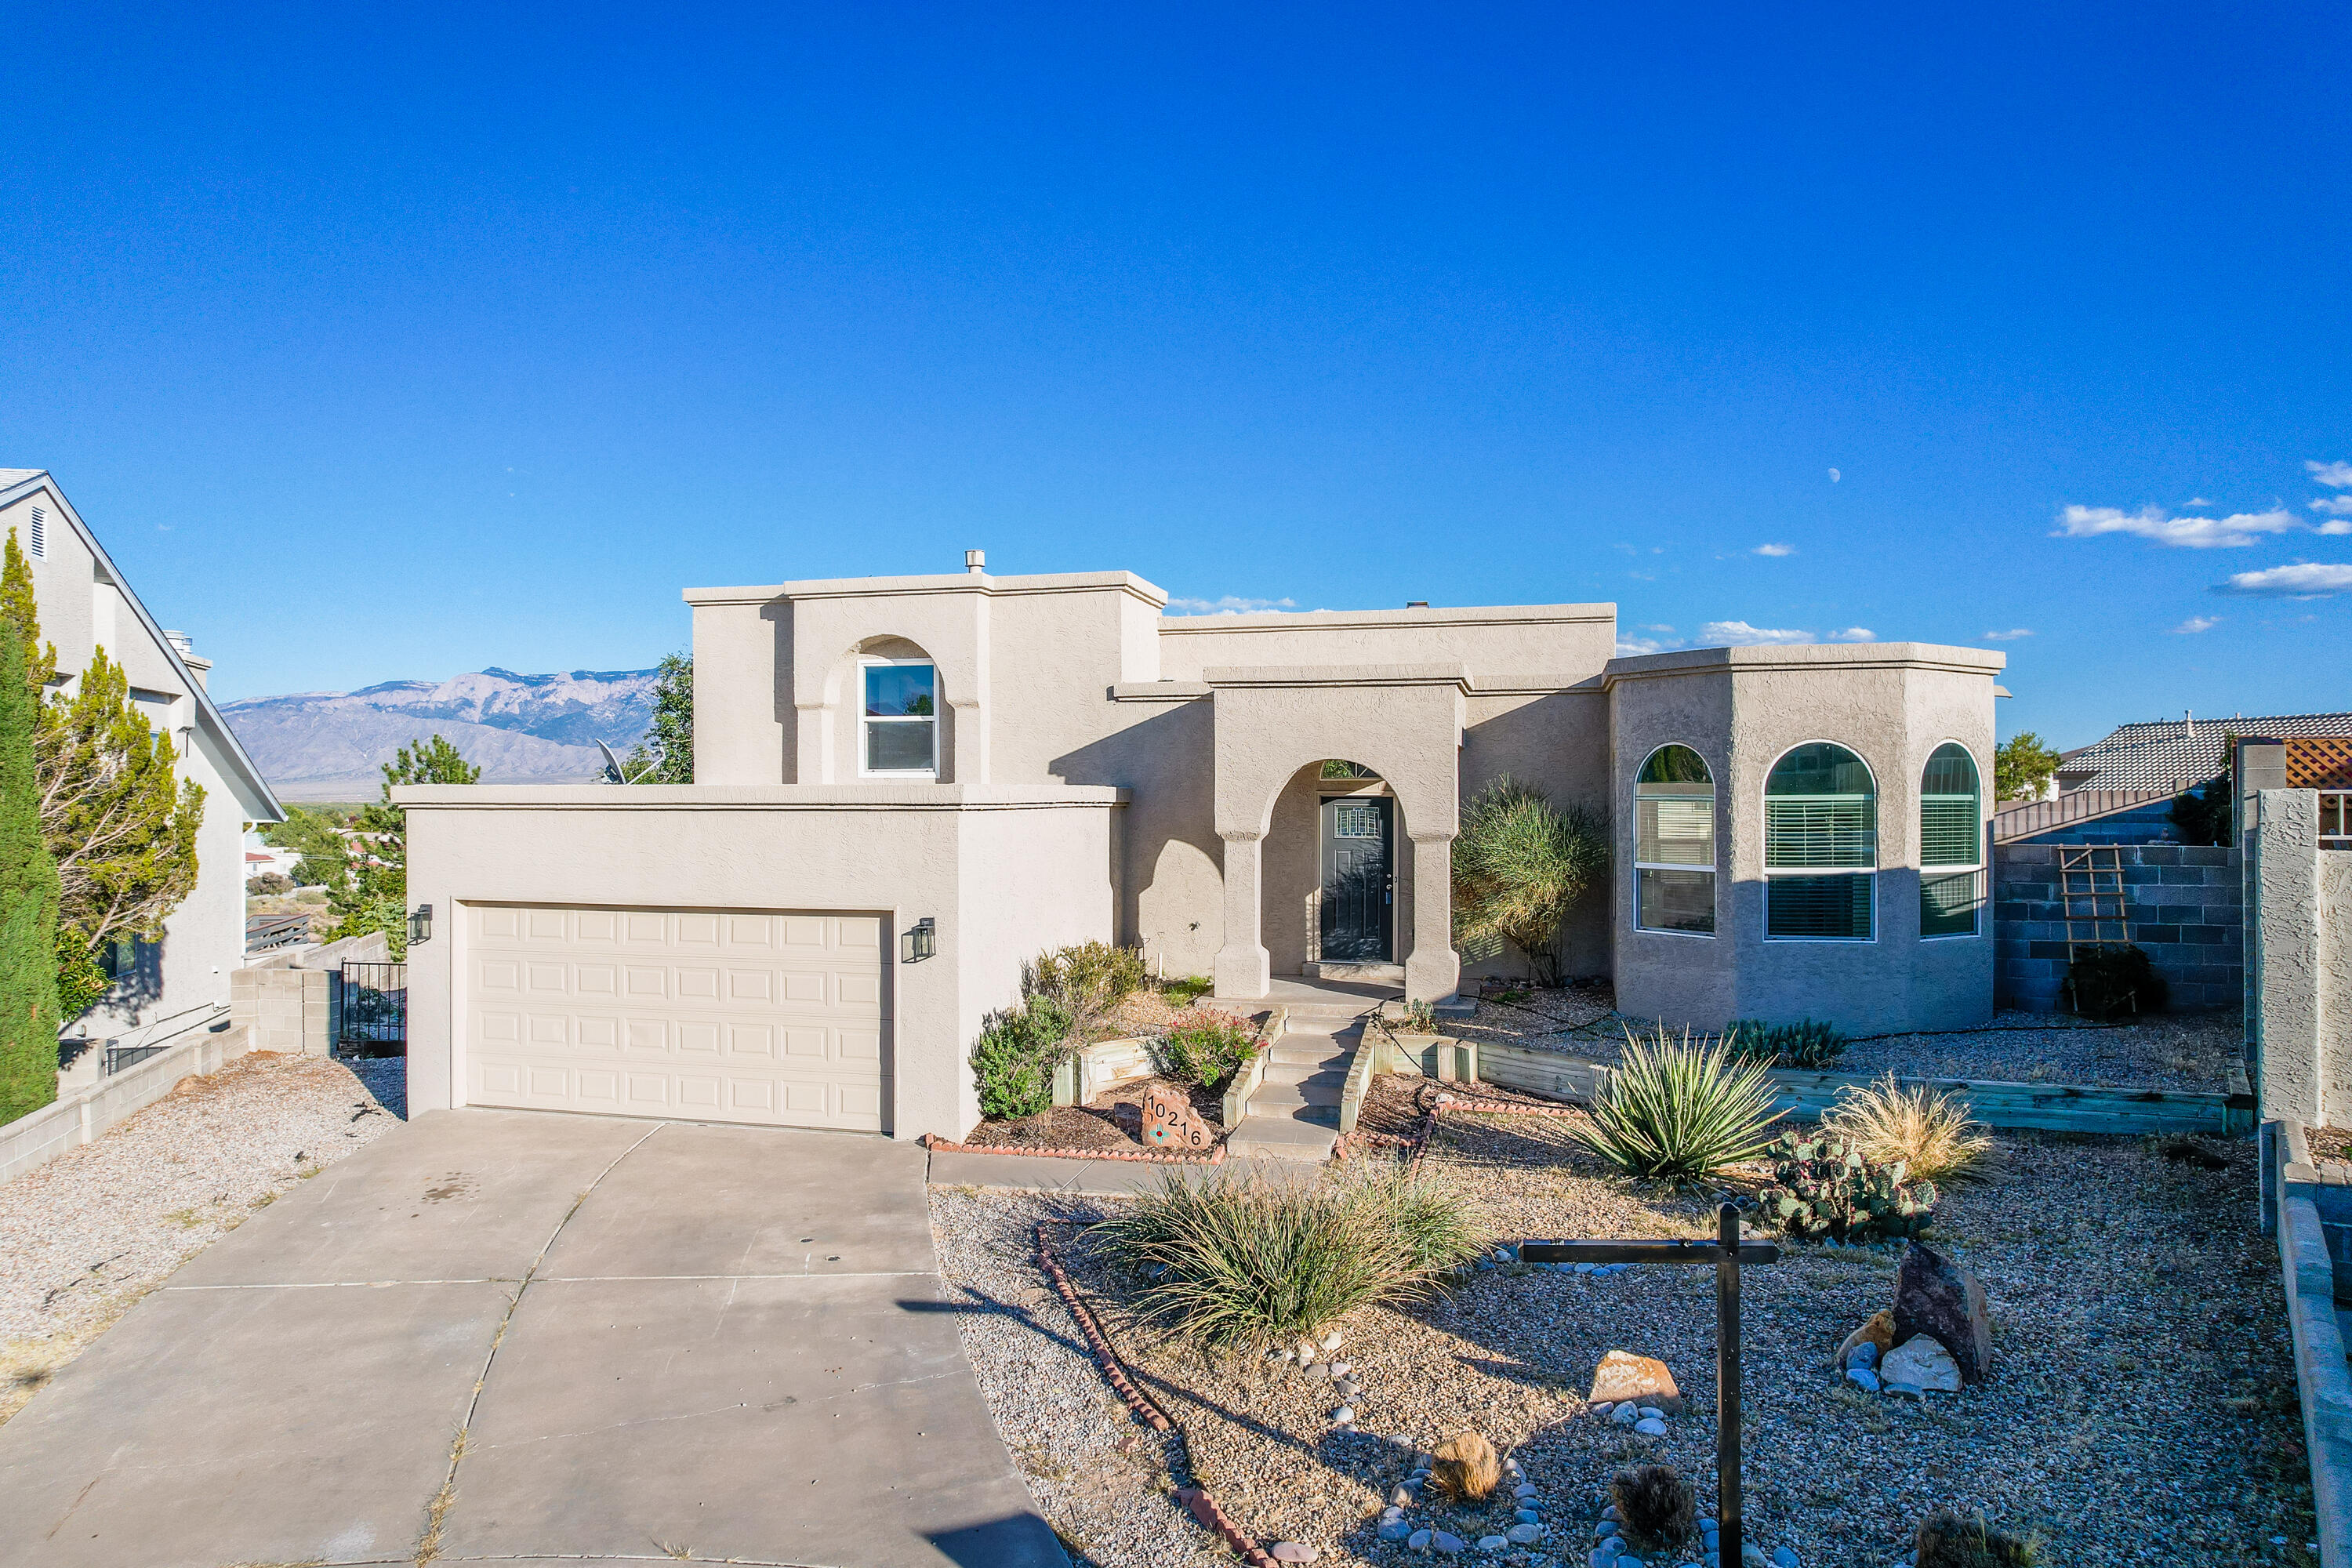 This Open has Neighborhood Access to Open Spaces and Trails. A Completely updated space that is Move-In ready. Three Bedrooms, and an office or possibly a recreation room. With Soaring ceilings, a fireplace, this Floorplan is a must see to appreciate how livable the space is. The lot is located in a Large Cul-De-sac with views of the Sandia Mountains from the deck of the Owners Suite.